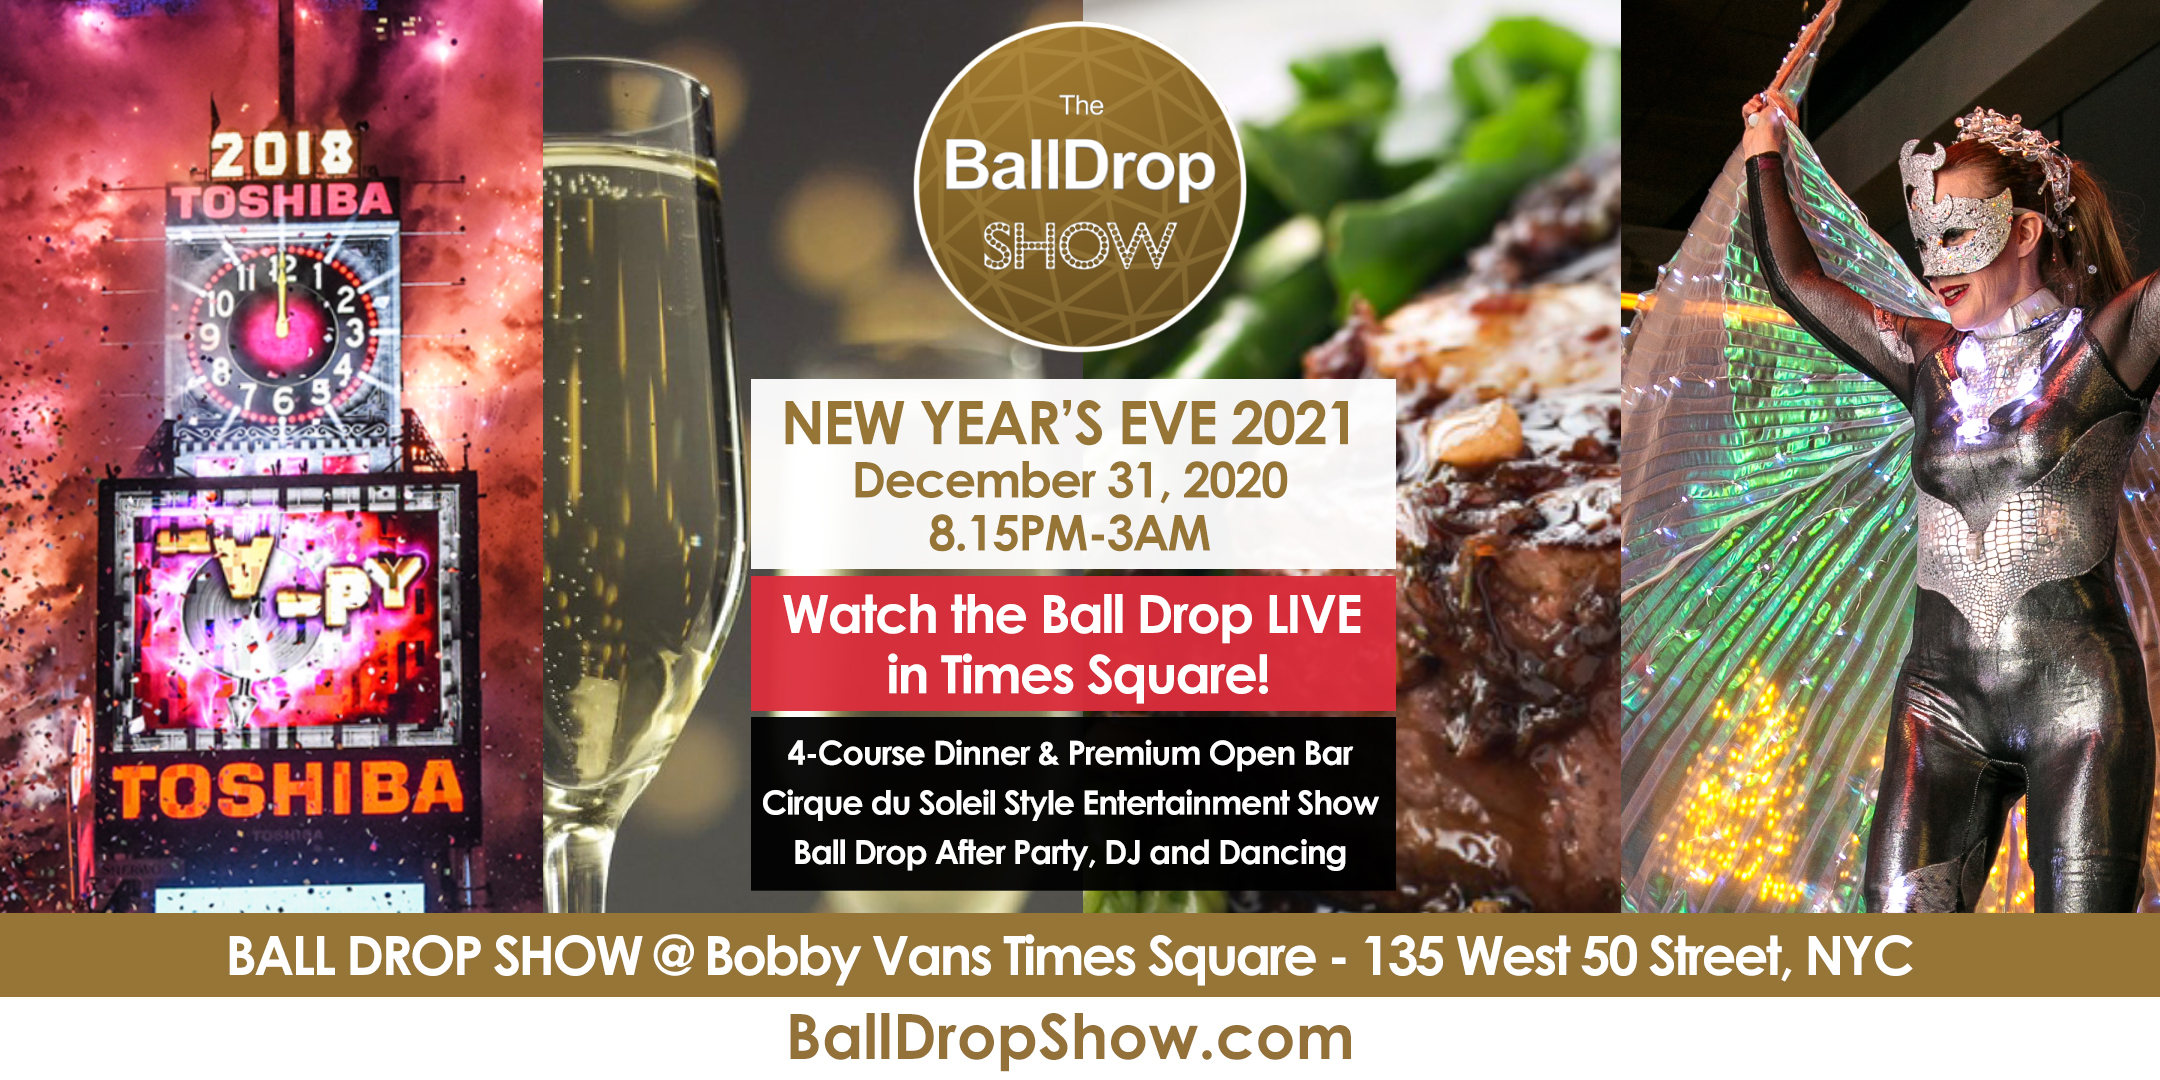 BALL DROP SHOW New Year's Eve 2021 - LIVE Ball Drop View & Show - Dec 31, 2020 Tickets, Thu, Dec ...